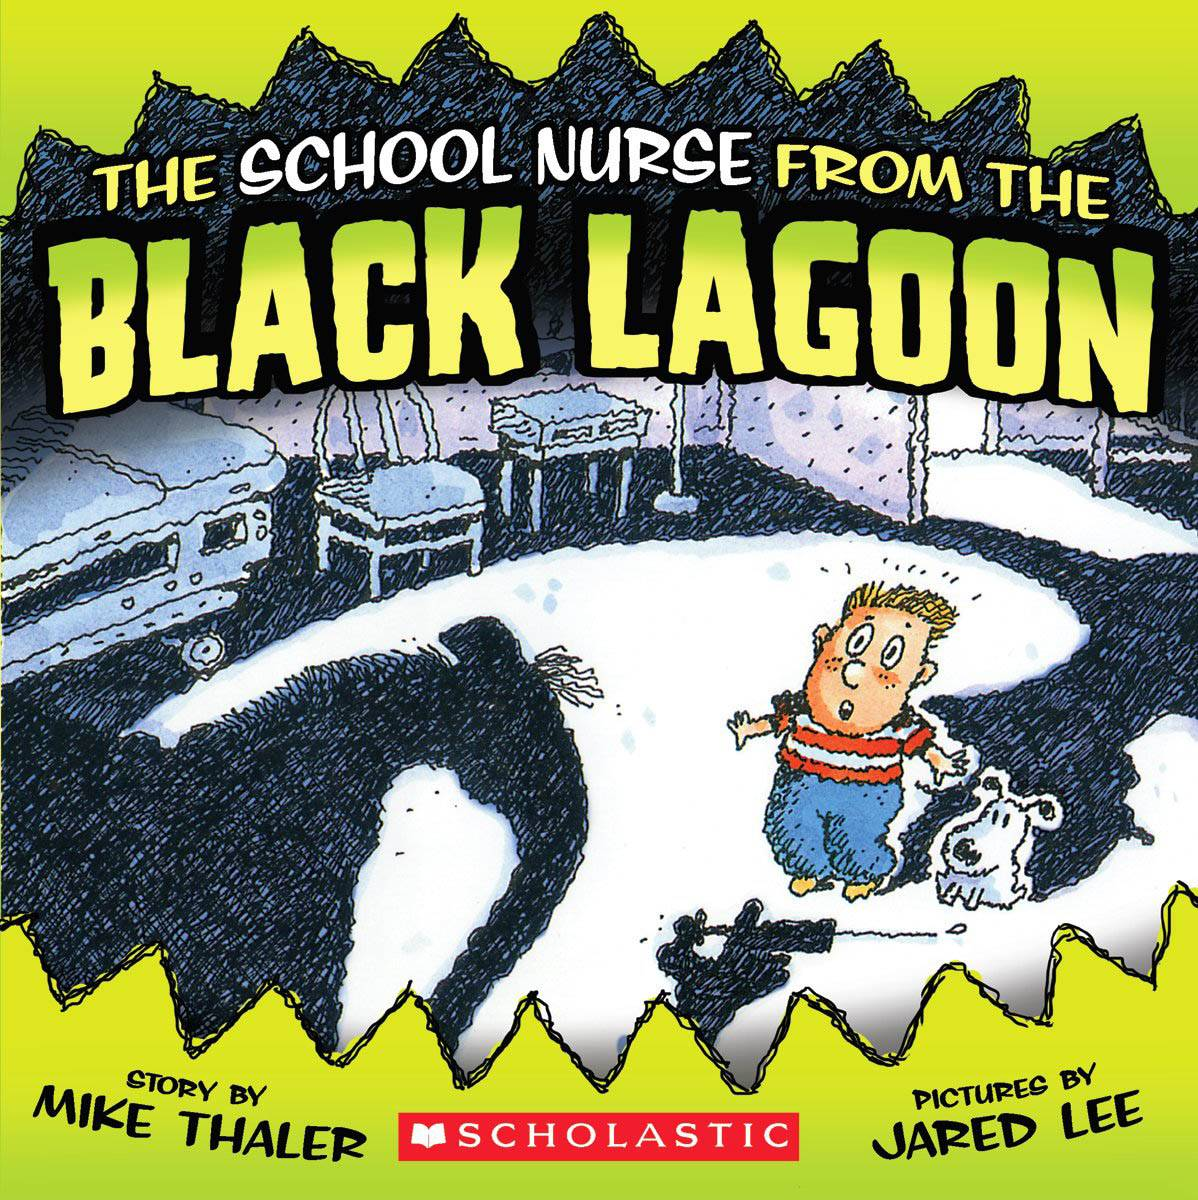 The School Nurse from the Black Lagoon (Paperback)